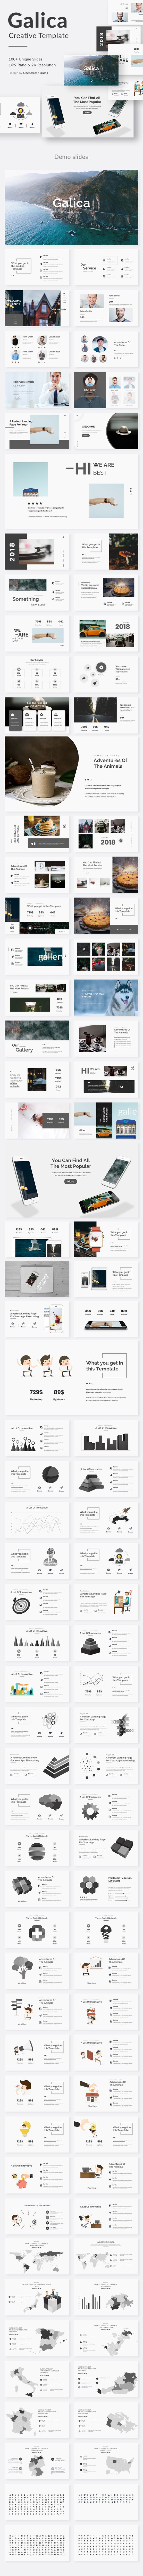 Galica Creative Powerpoint Template #ecomerce #keynote template • Download ➝ https://graphicriver.net/item/galica-creative-powerpoint-template/21507672?ref=pxcr